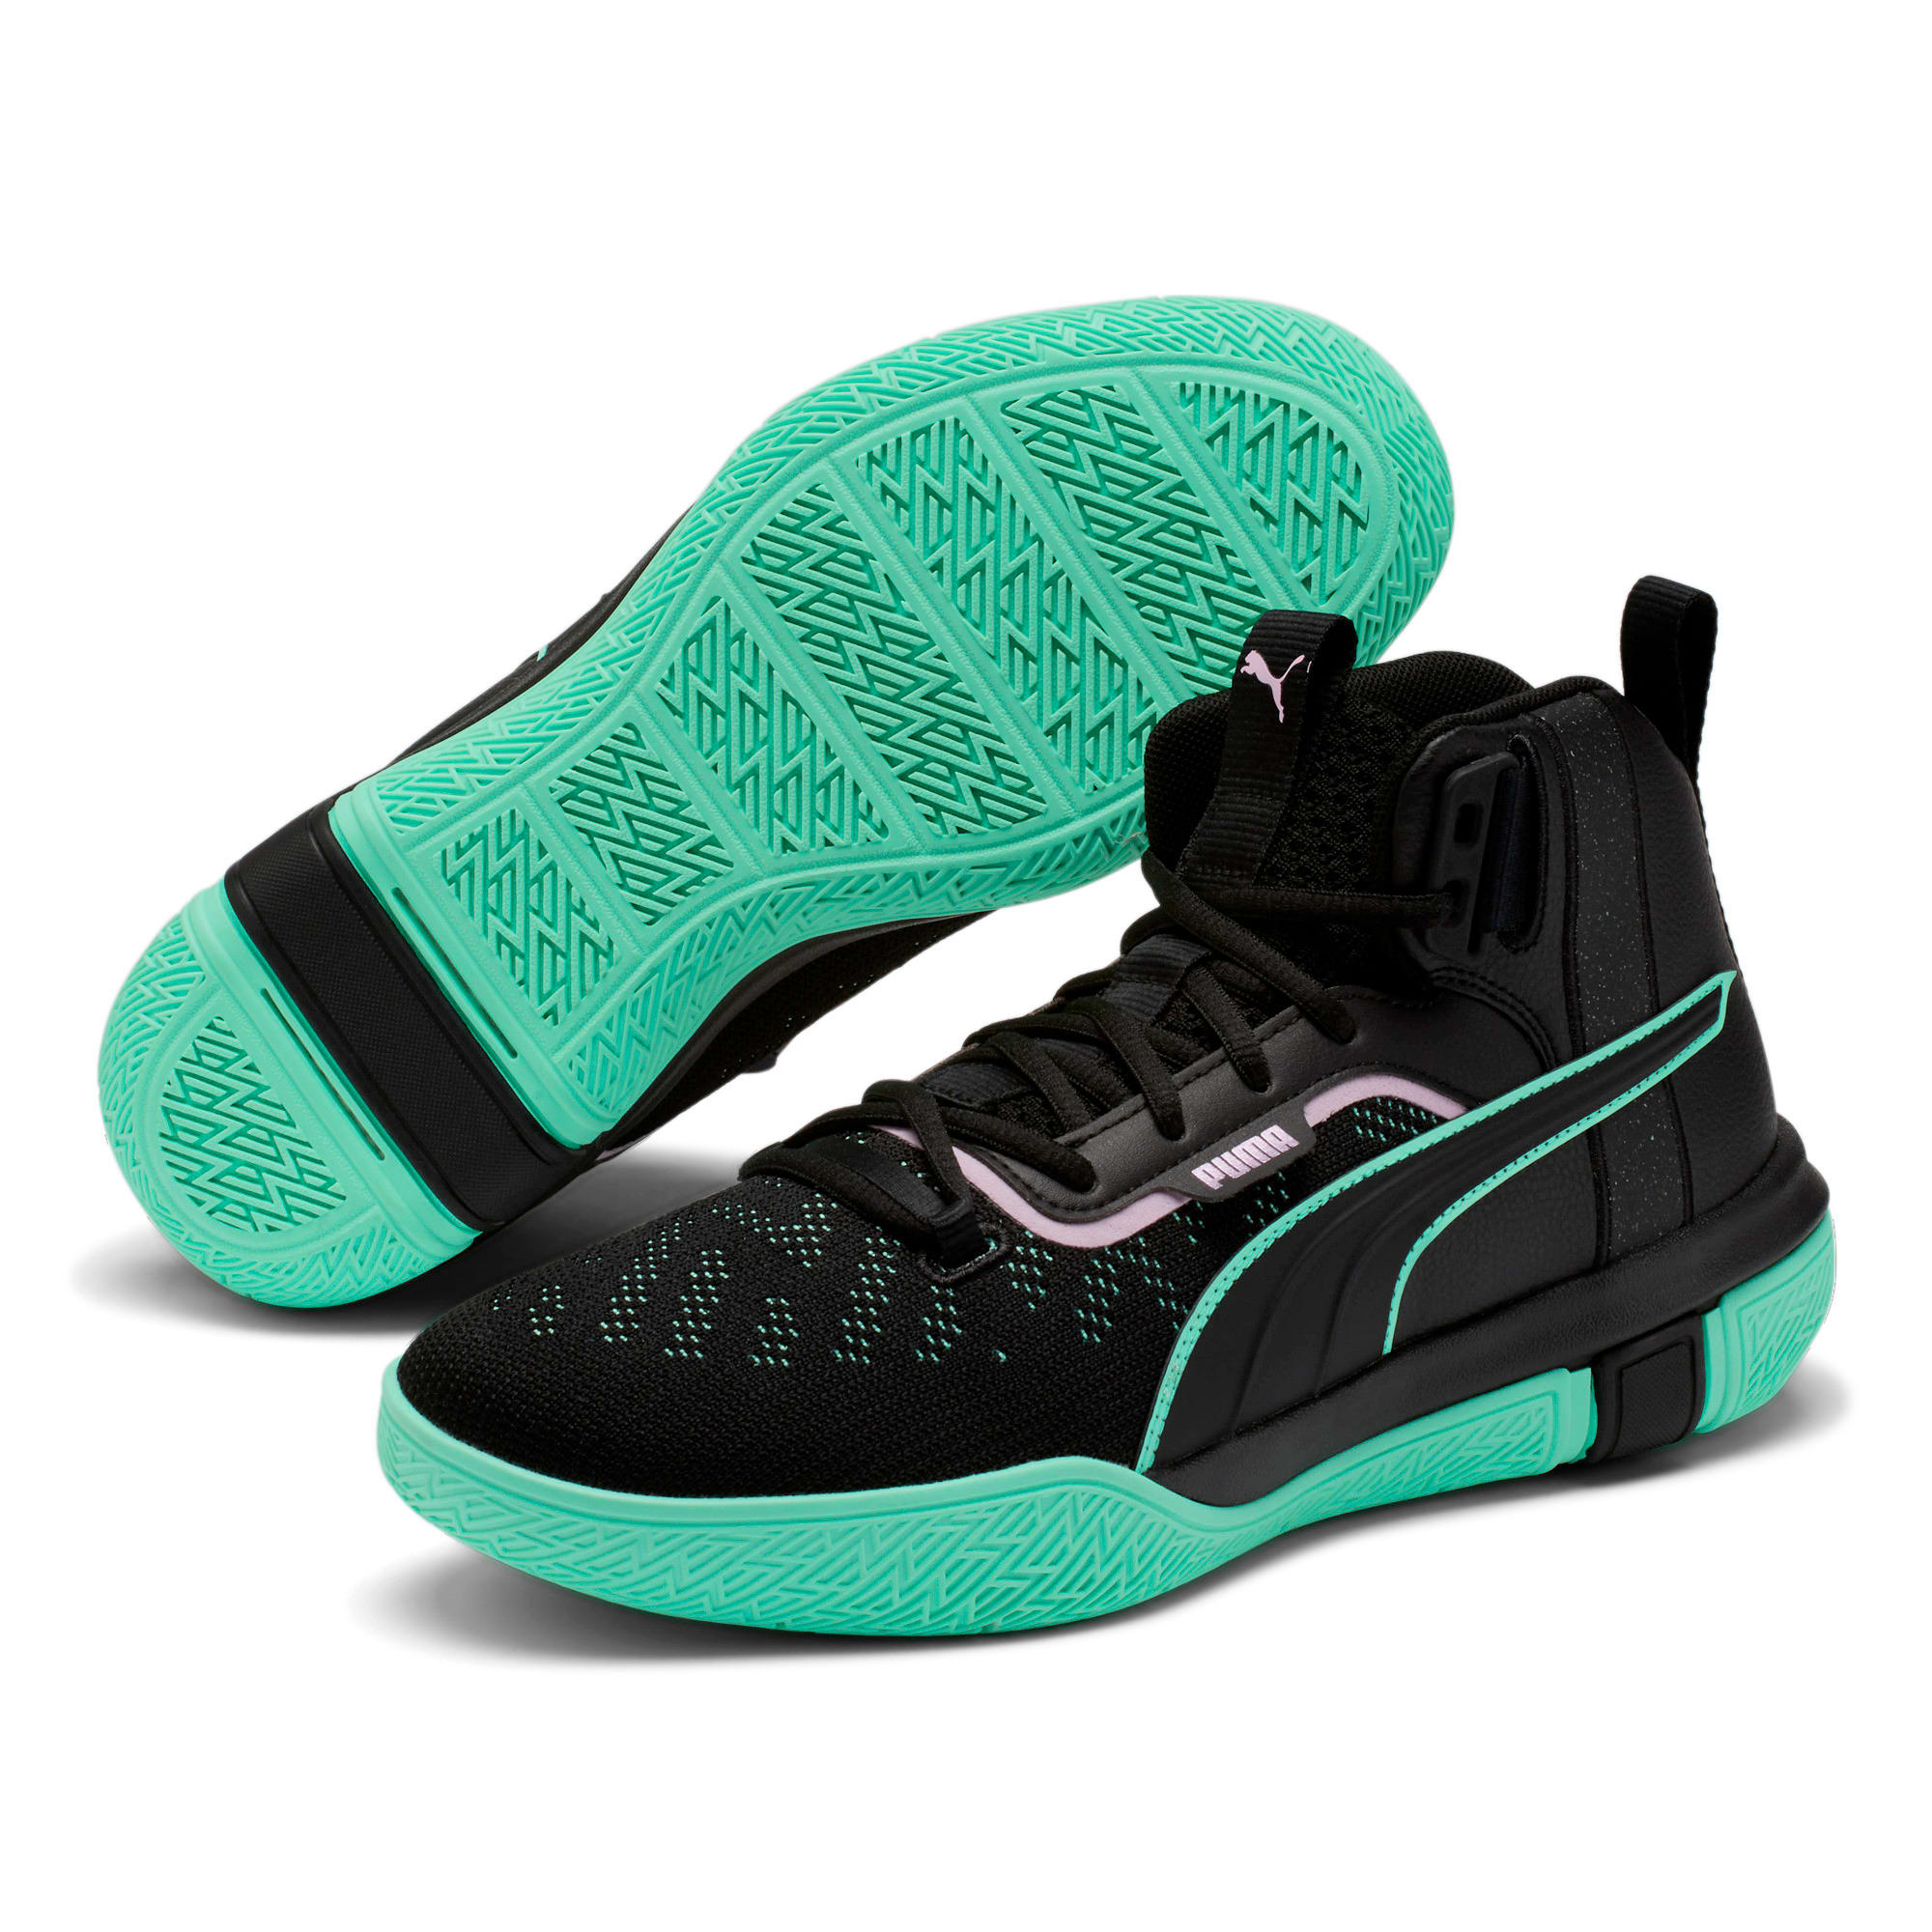 Thumbnail 2 of Legacy Dark Mode Basketball Shoes, Puma Black-Orchid Bloom, medium-IND